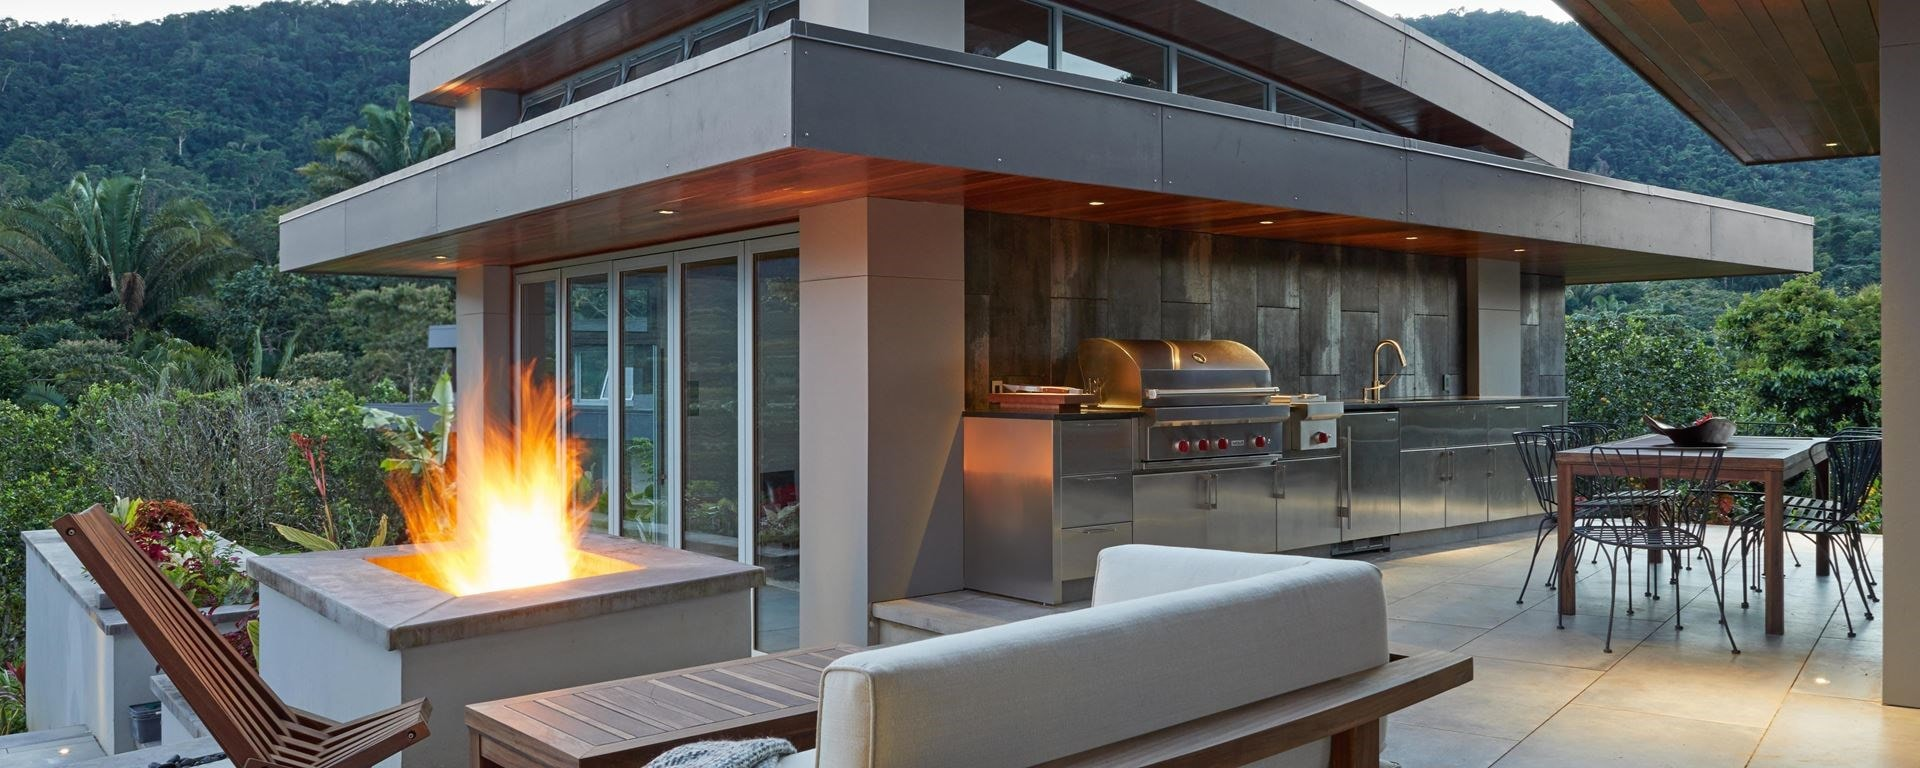 The Jungle Grill featured in our kitchen design contest shows outdoor kitchen spaces can have luxury in any location.